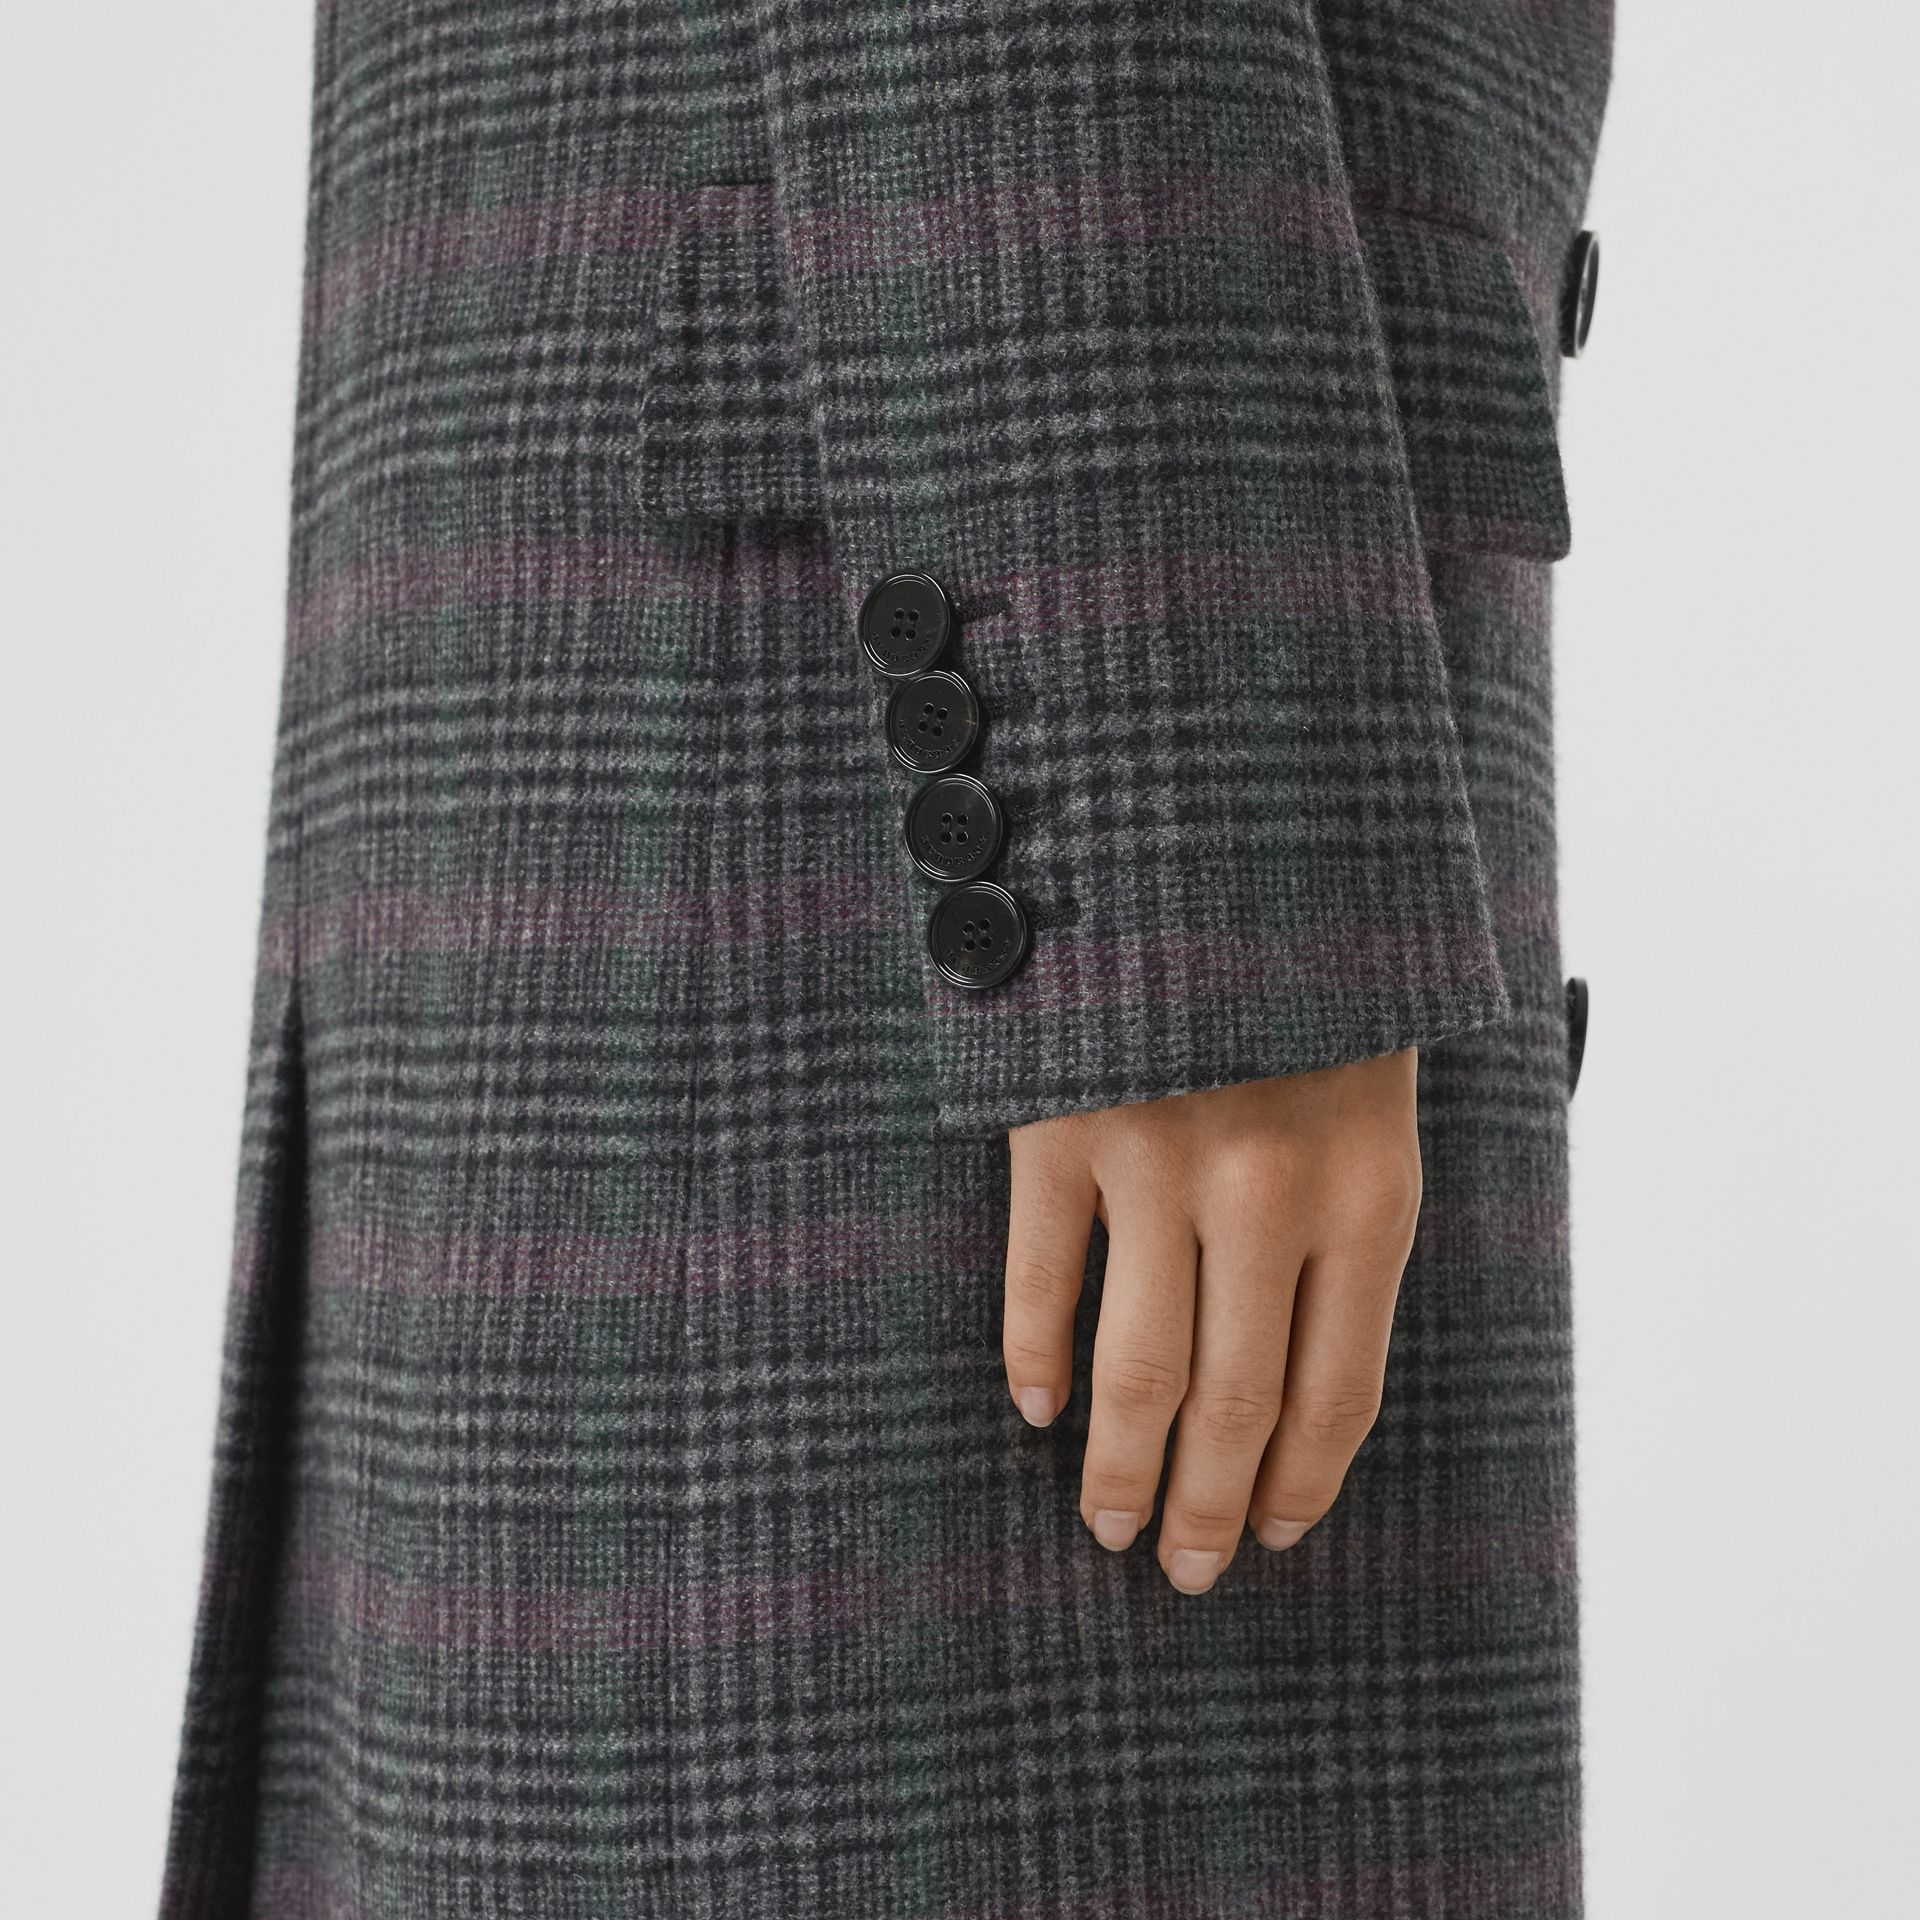 Prince of Wales Check Wool Tailored Coat in Charcoal - Women | Burberry Singapore - gallery image 4